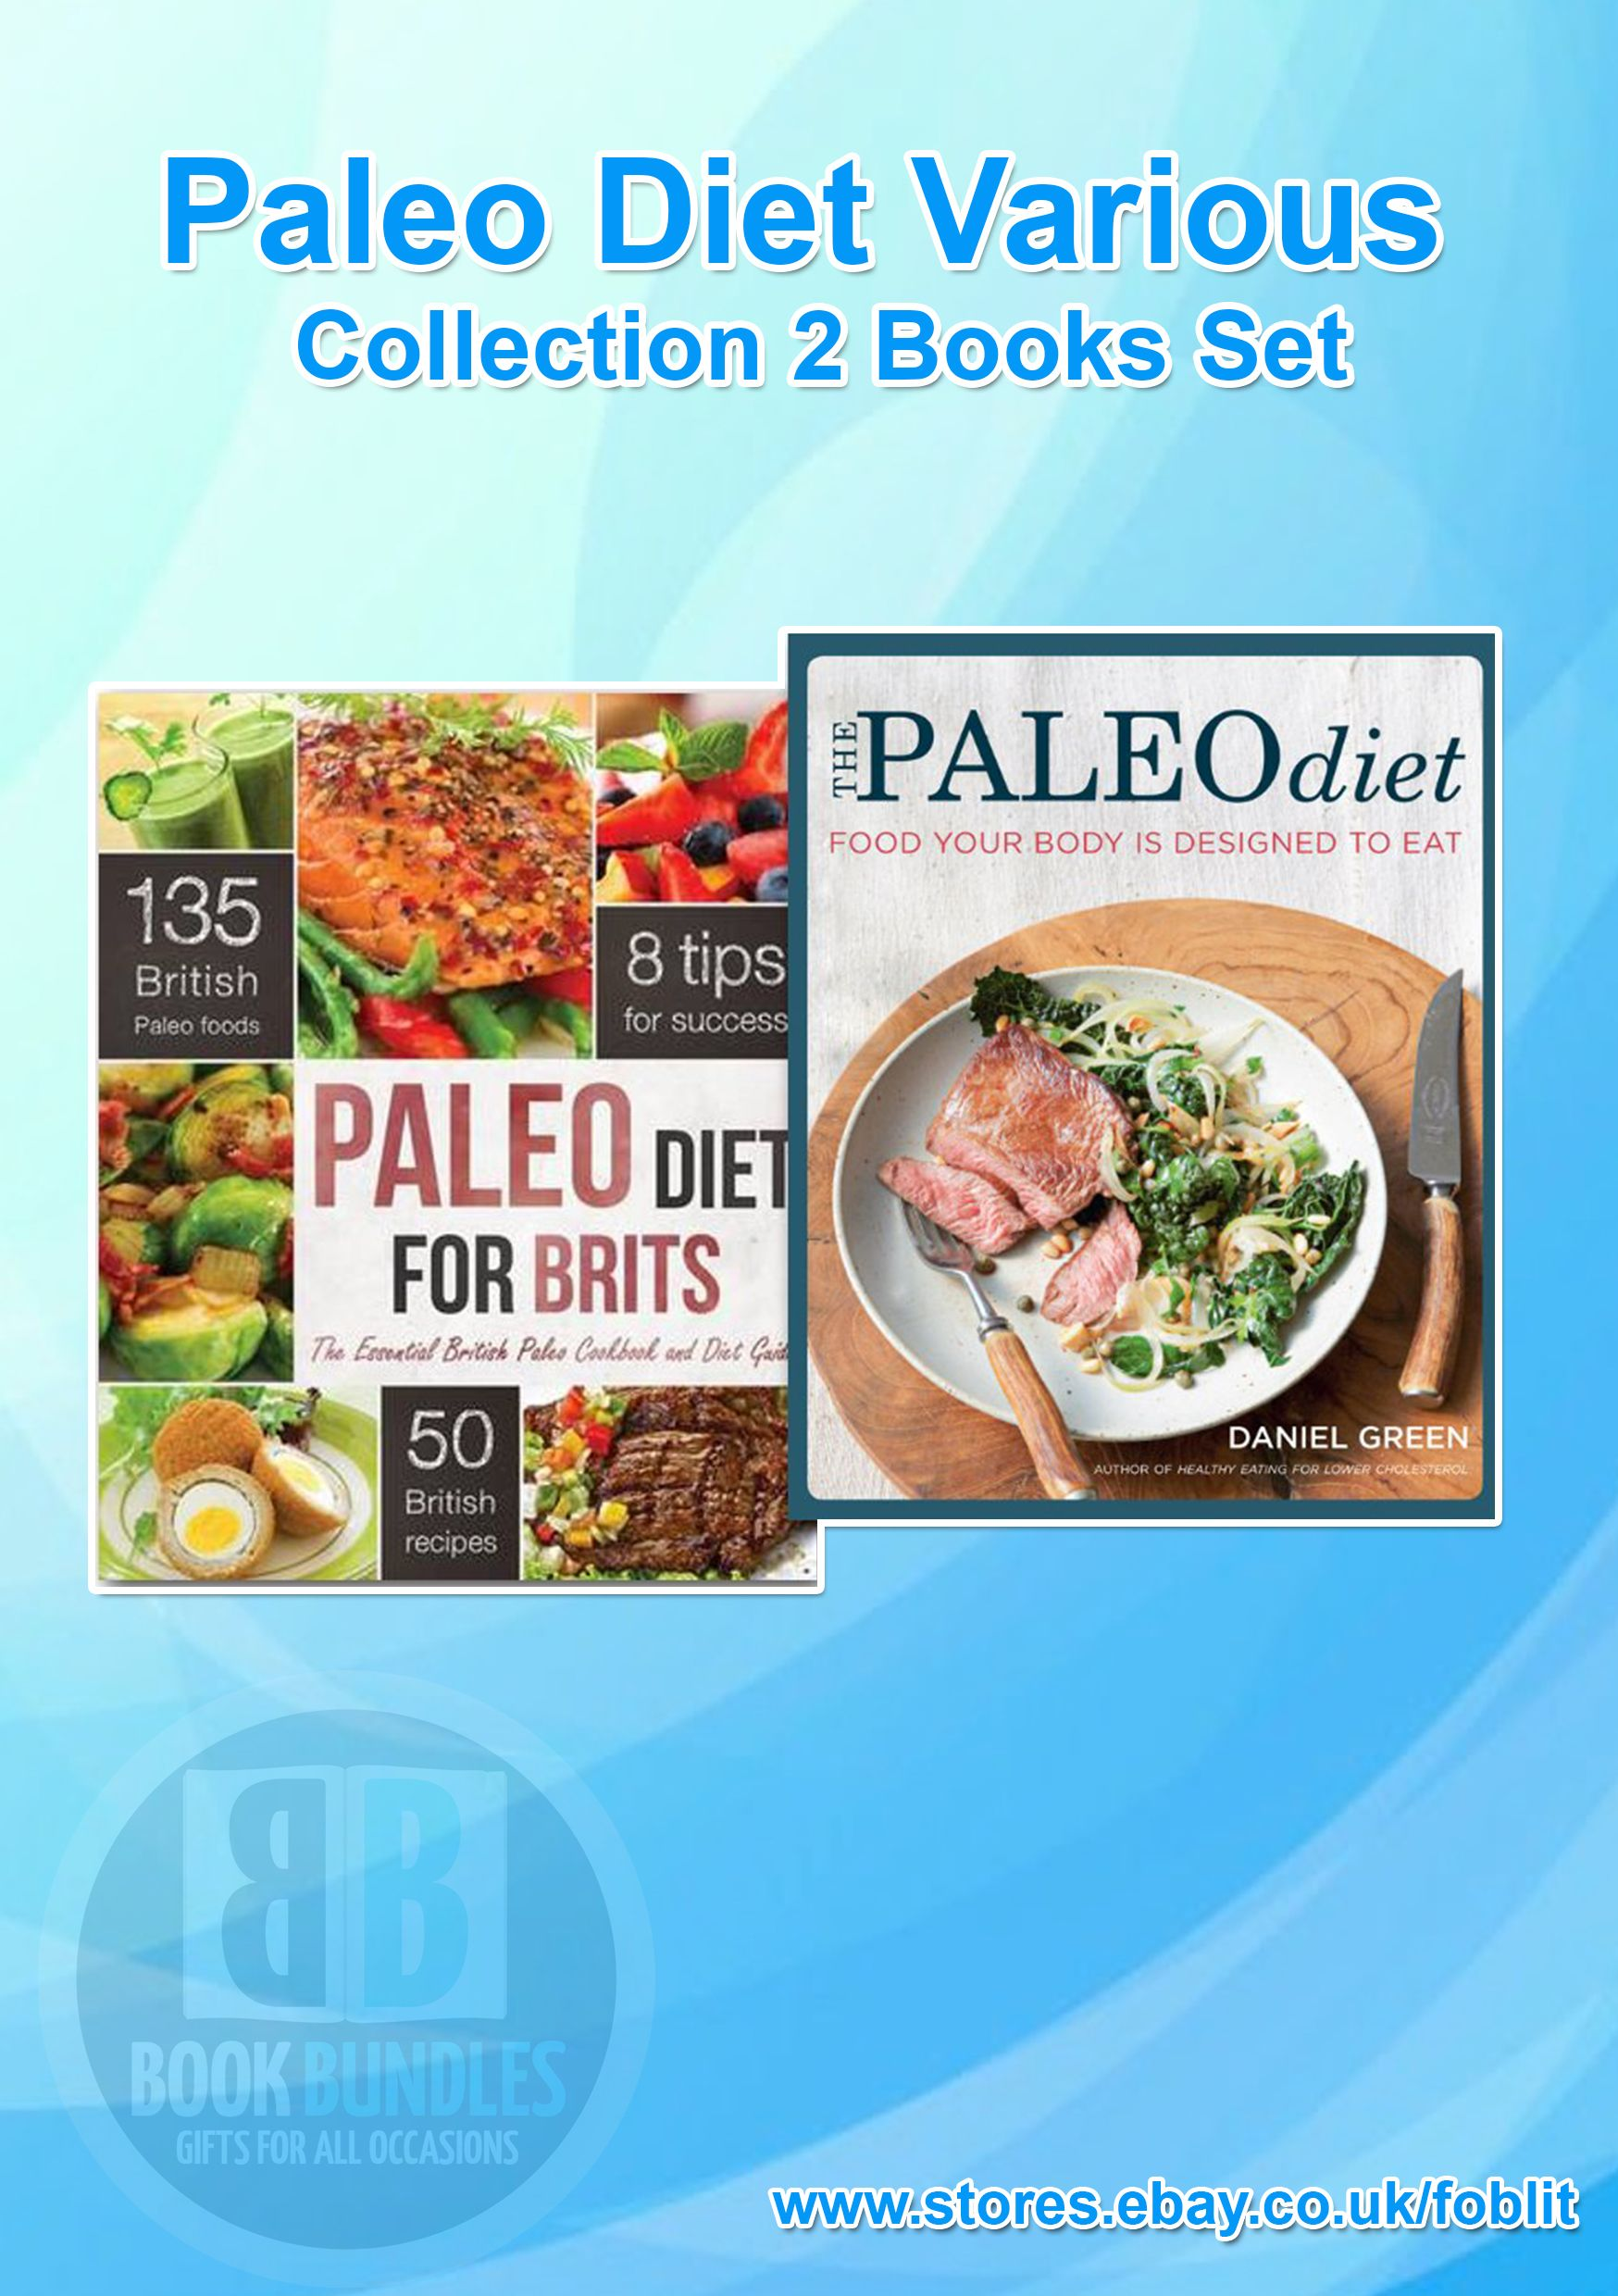 A Complete Kit for Paleo Success